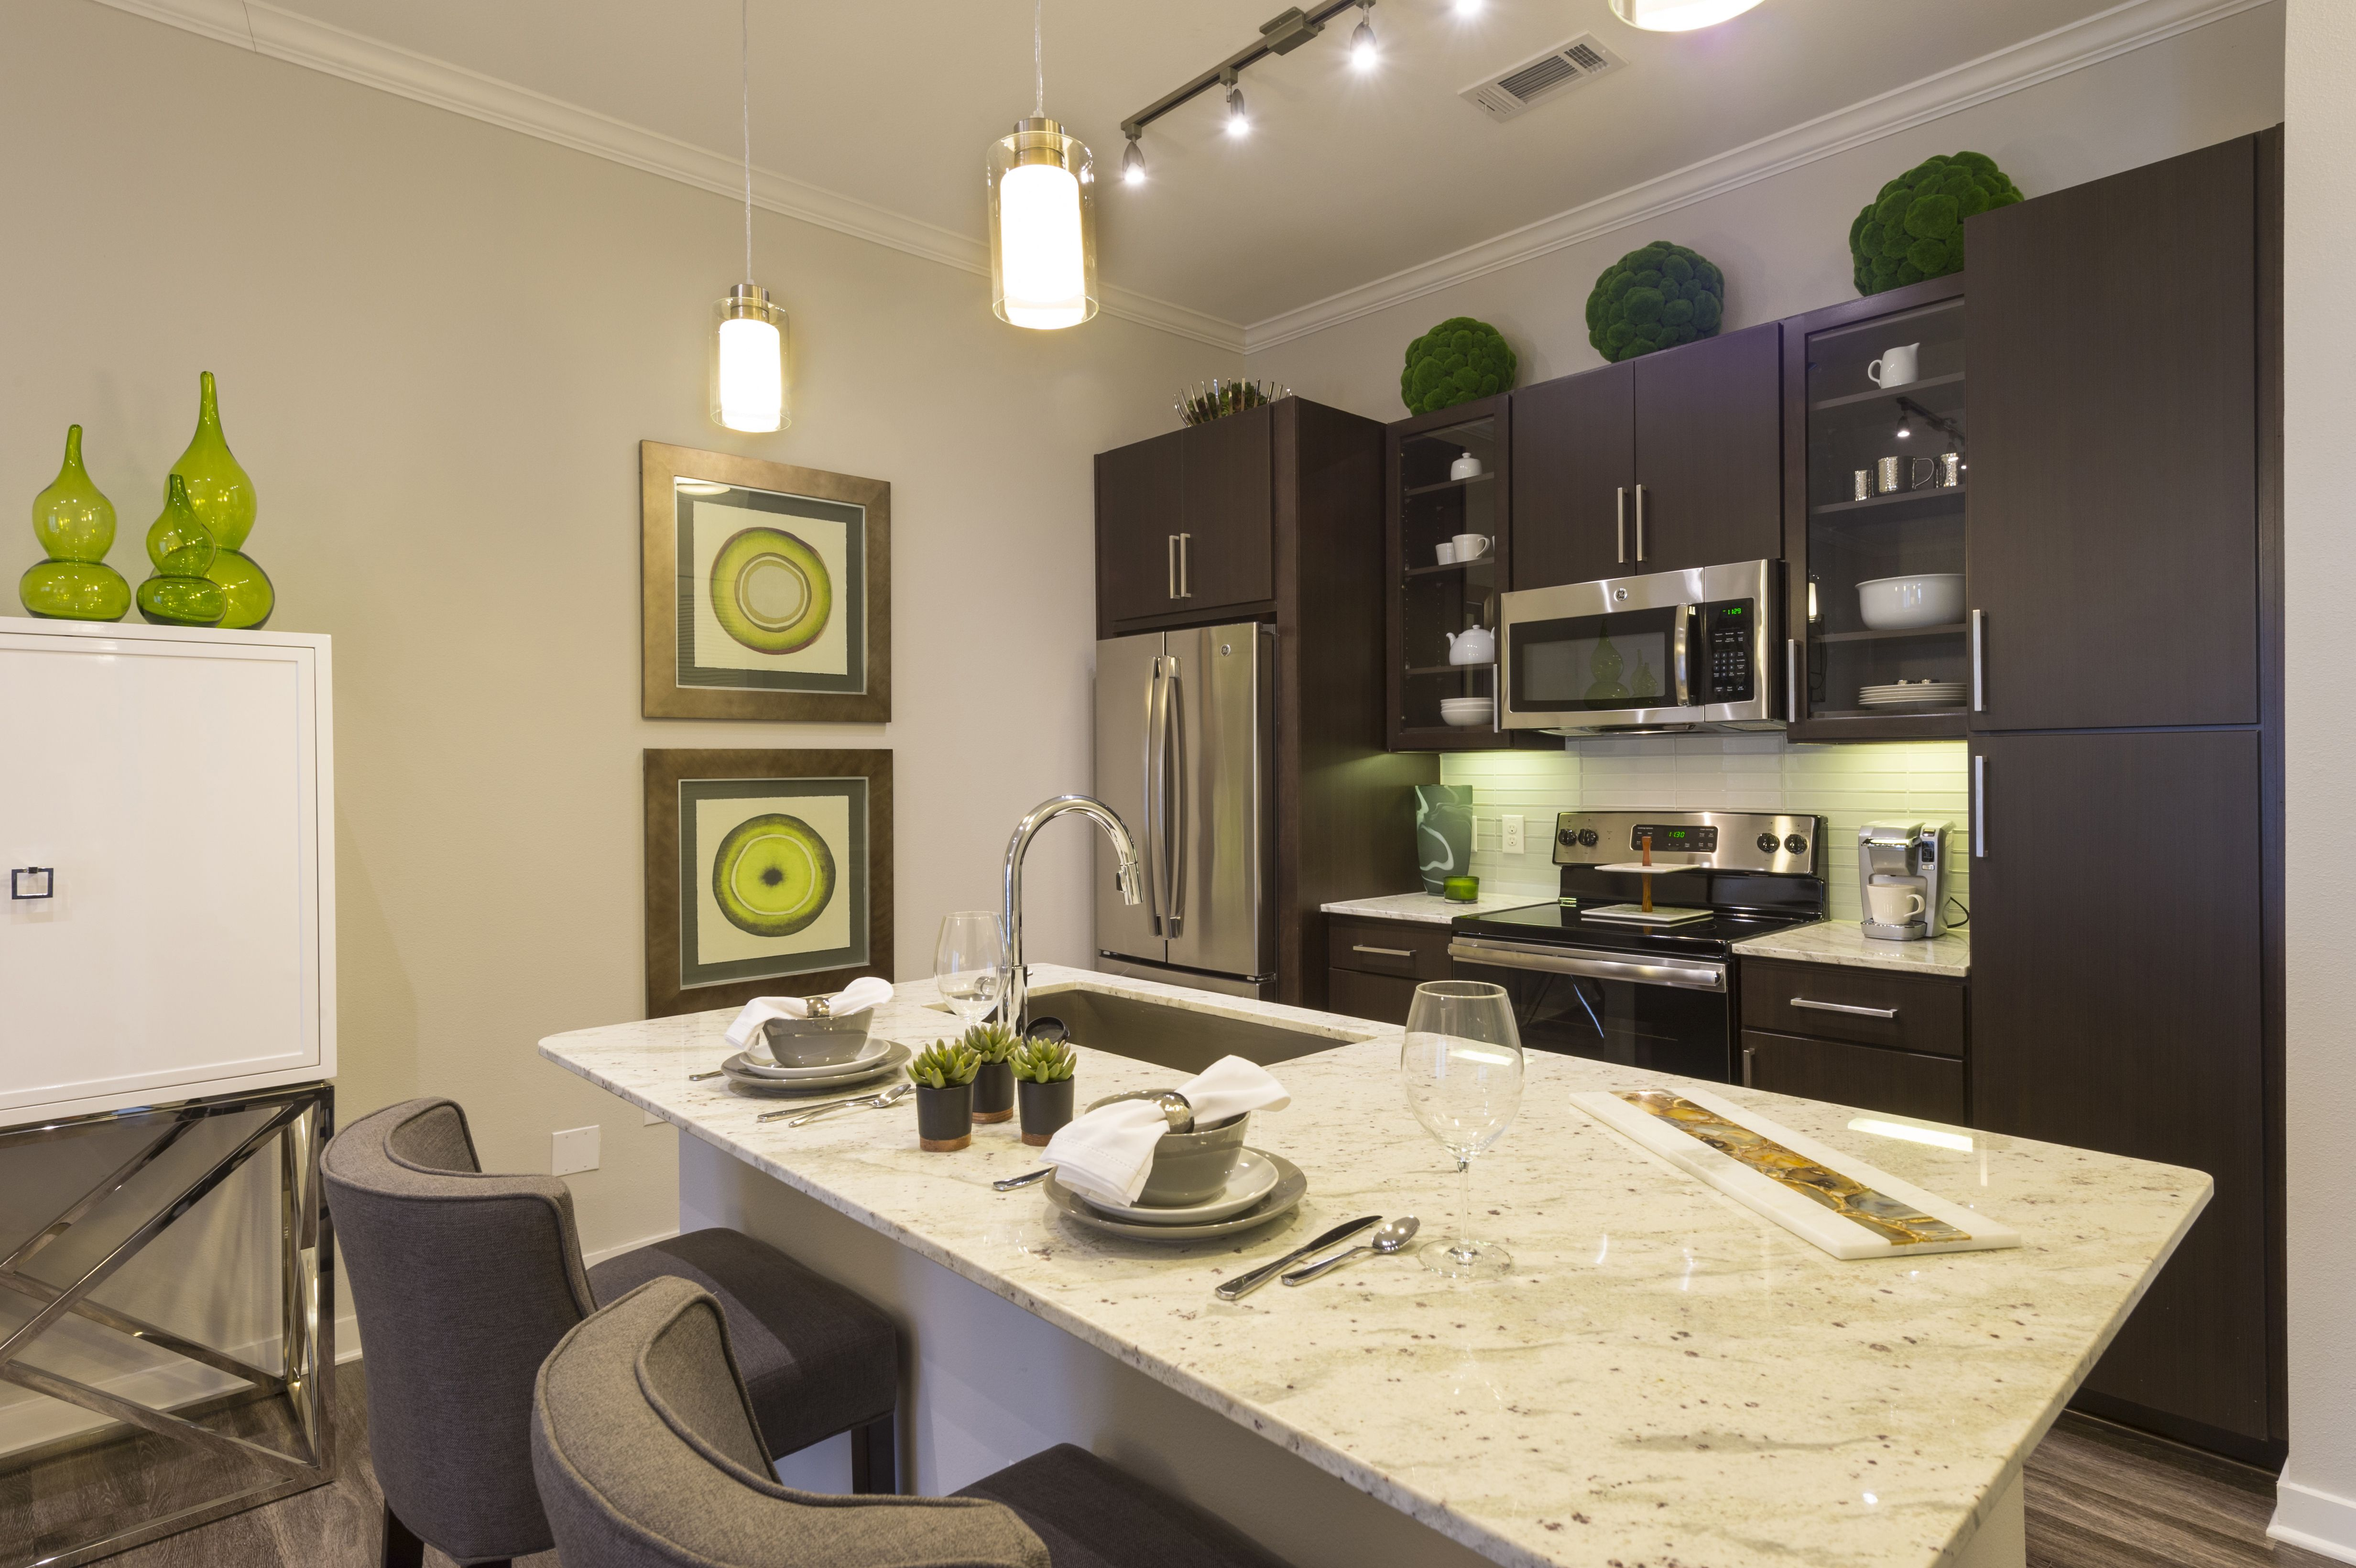 Gallery Home decor, Rental apartments, Sugarland